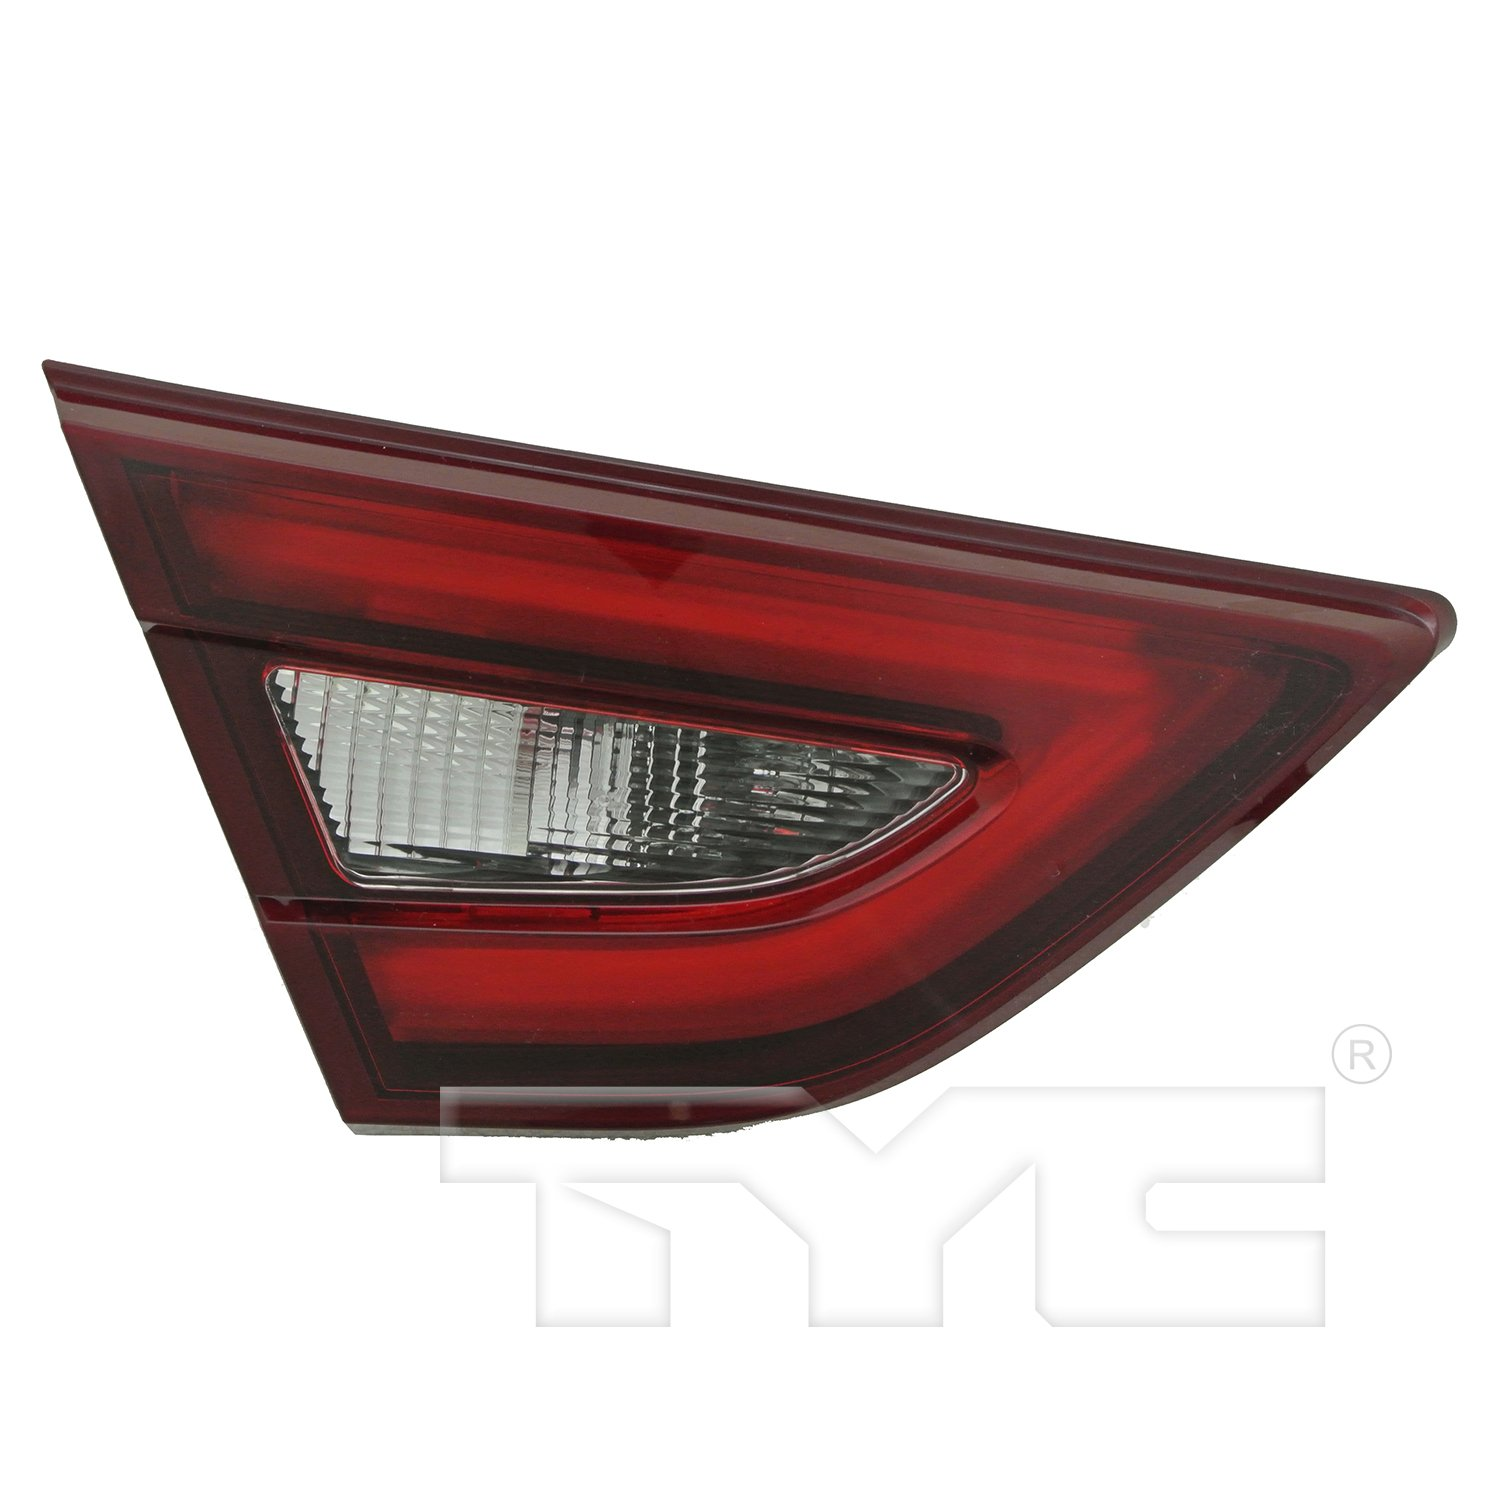 TYC 17-5594-00-1 Replacement Left Reflex Reflector for Nissan Maxima